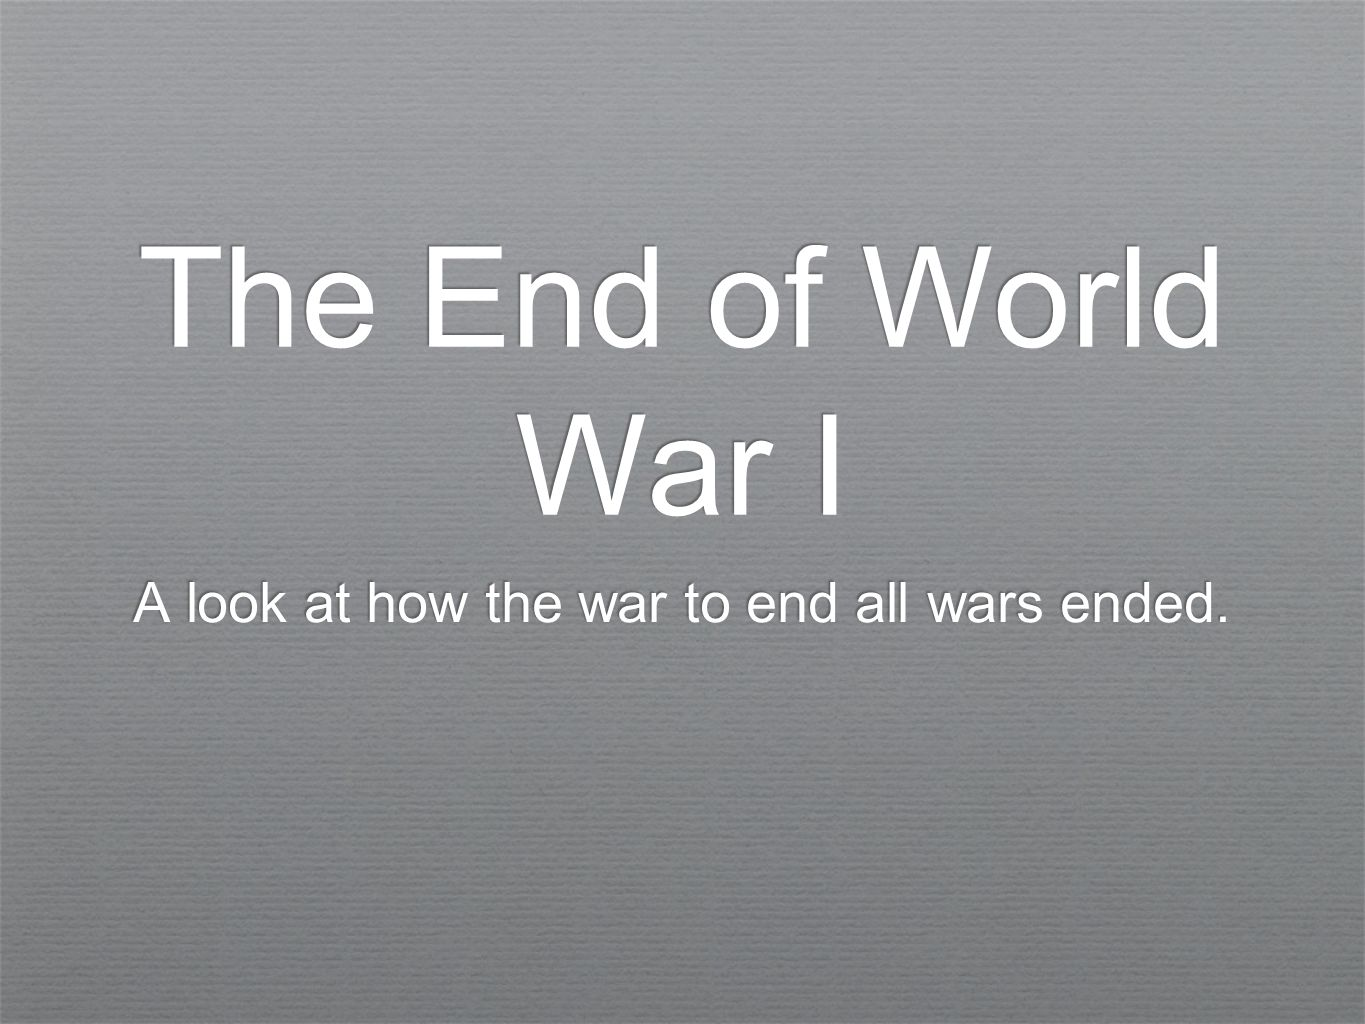 A look at how the war to end all wars ended.